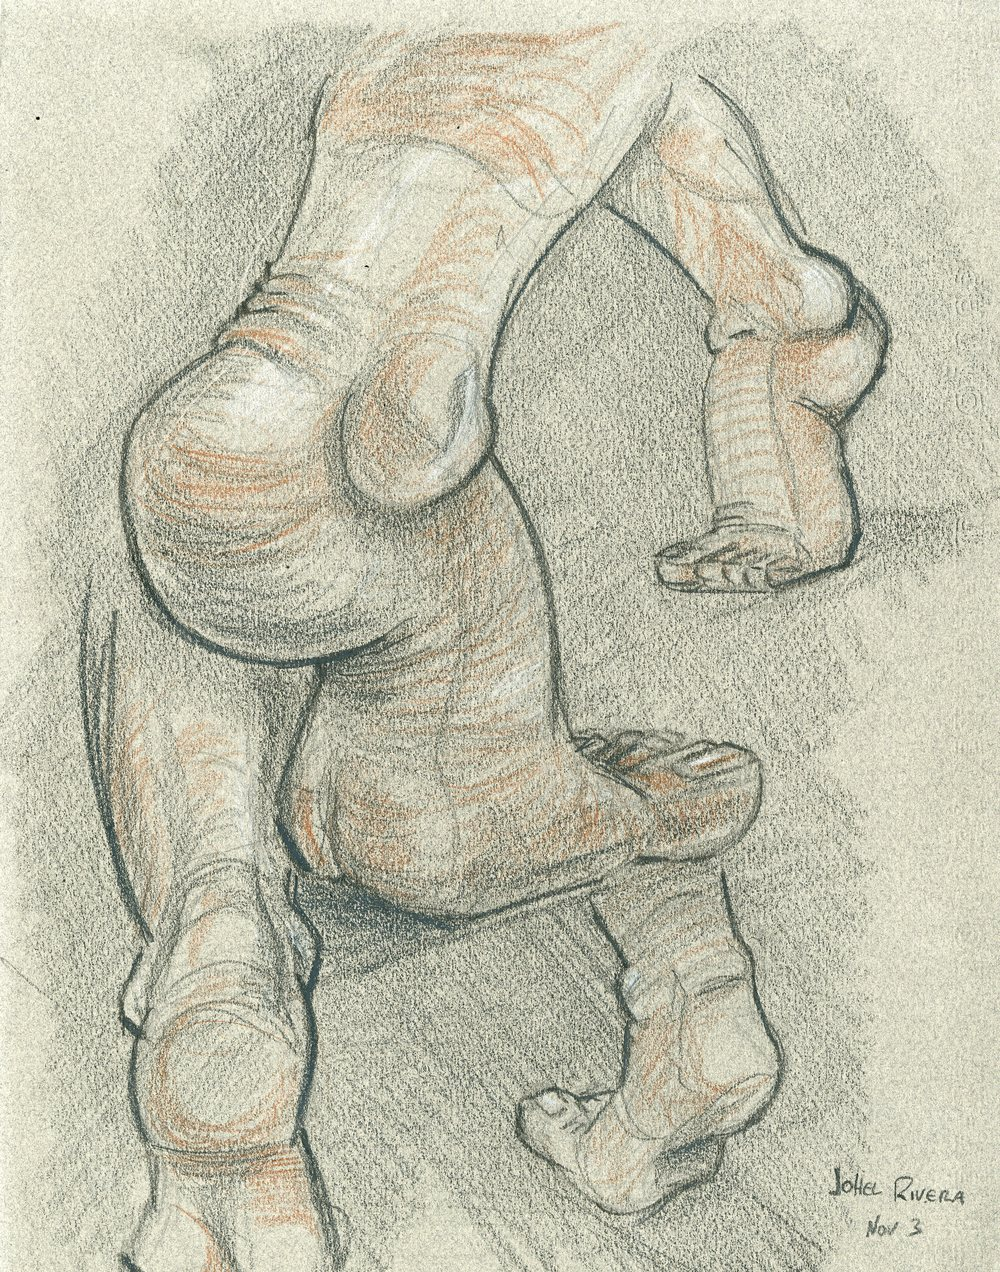 lifeDrawing_002.jpg